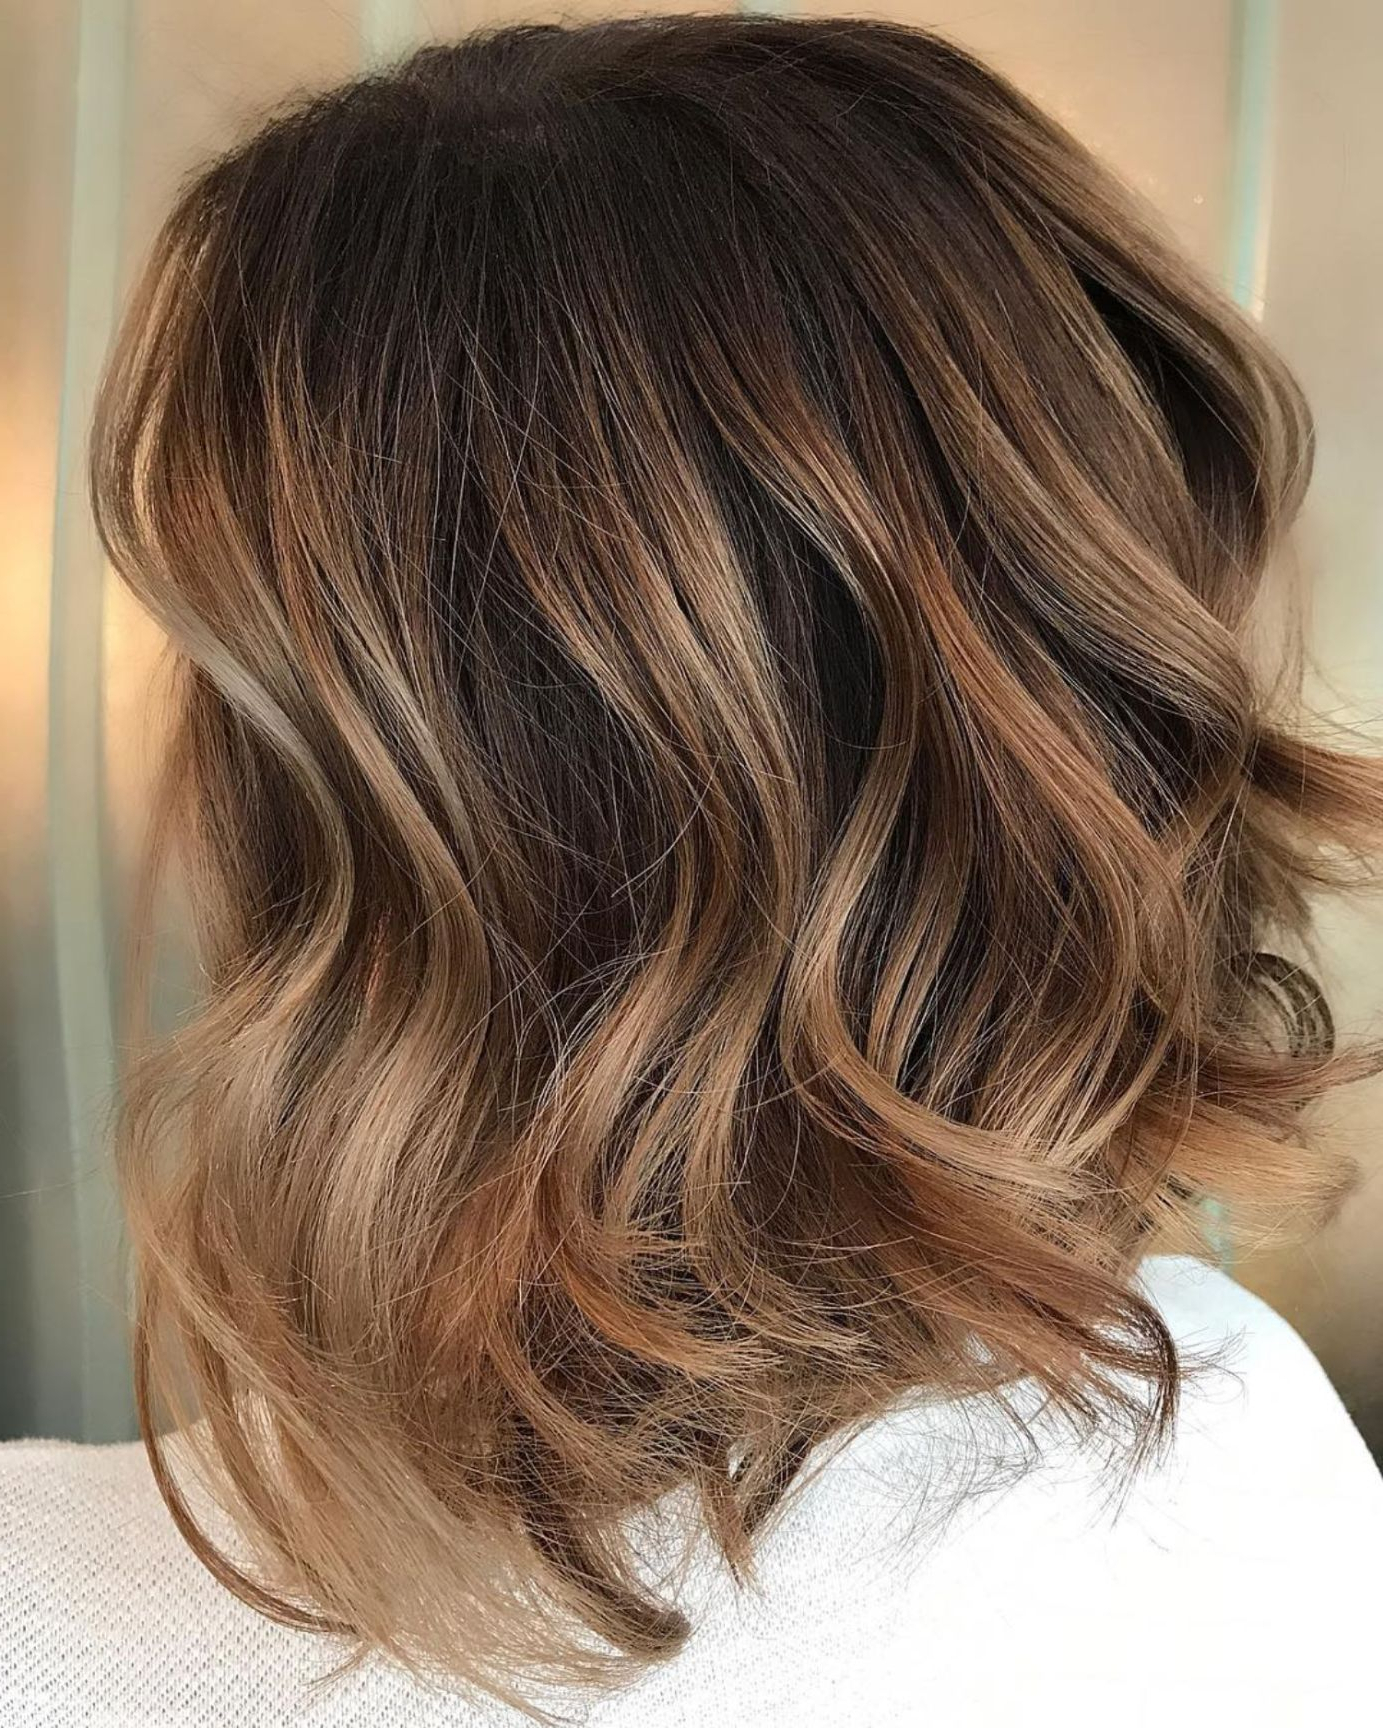 60 Looks With Caramel Highlights On Brown And Dark Brown For Caramel Blonde Balayage On Inverted Lob Hairstyles (View 16 of 20)